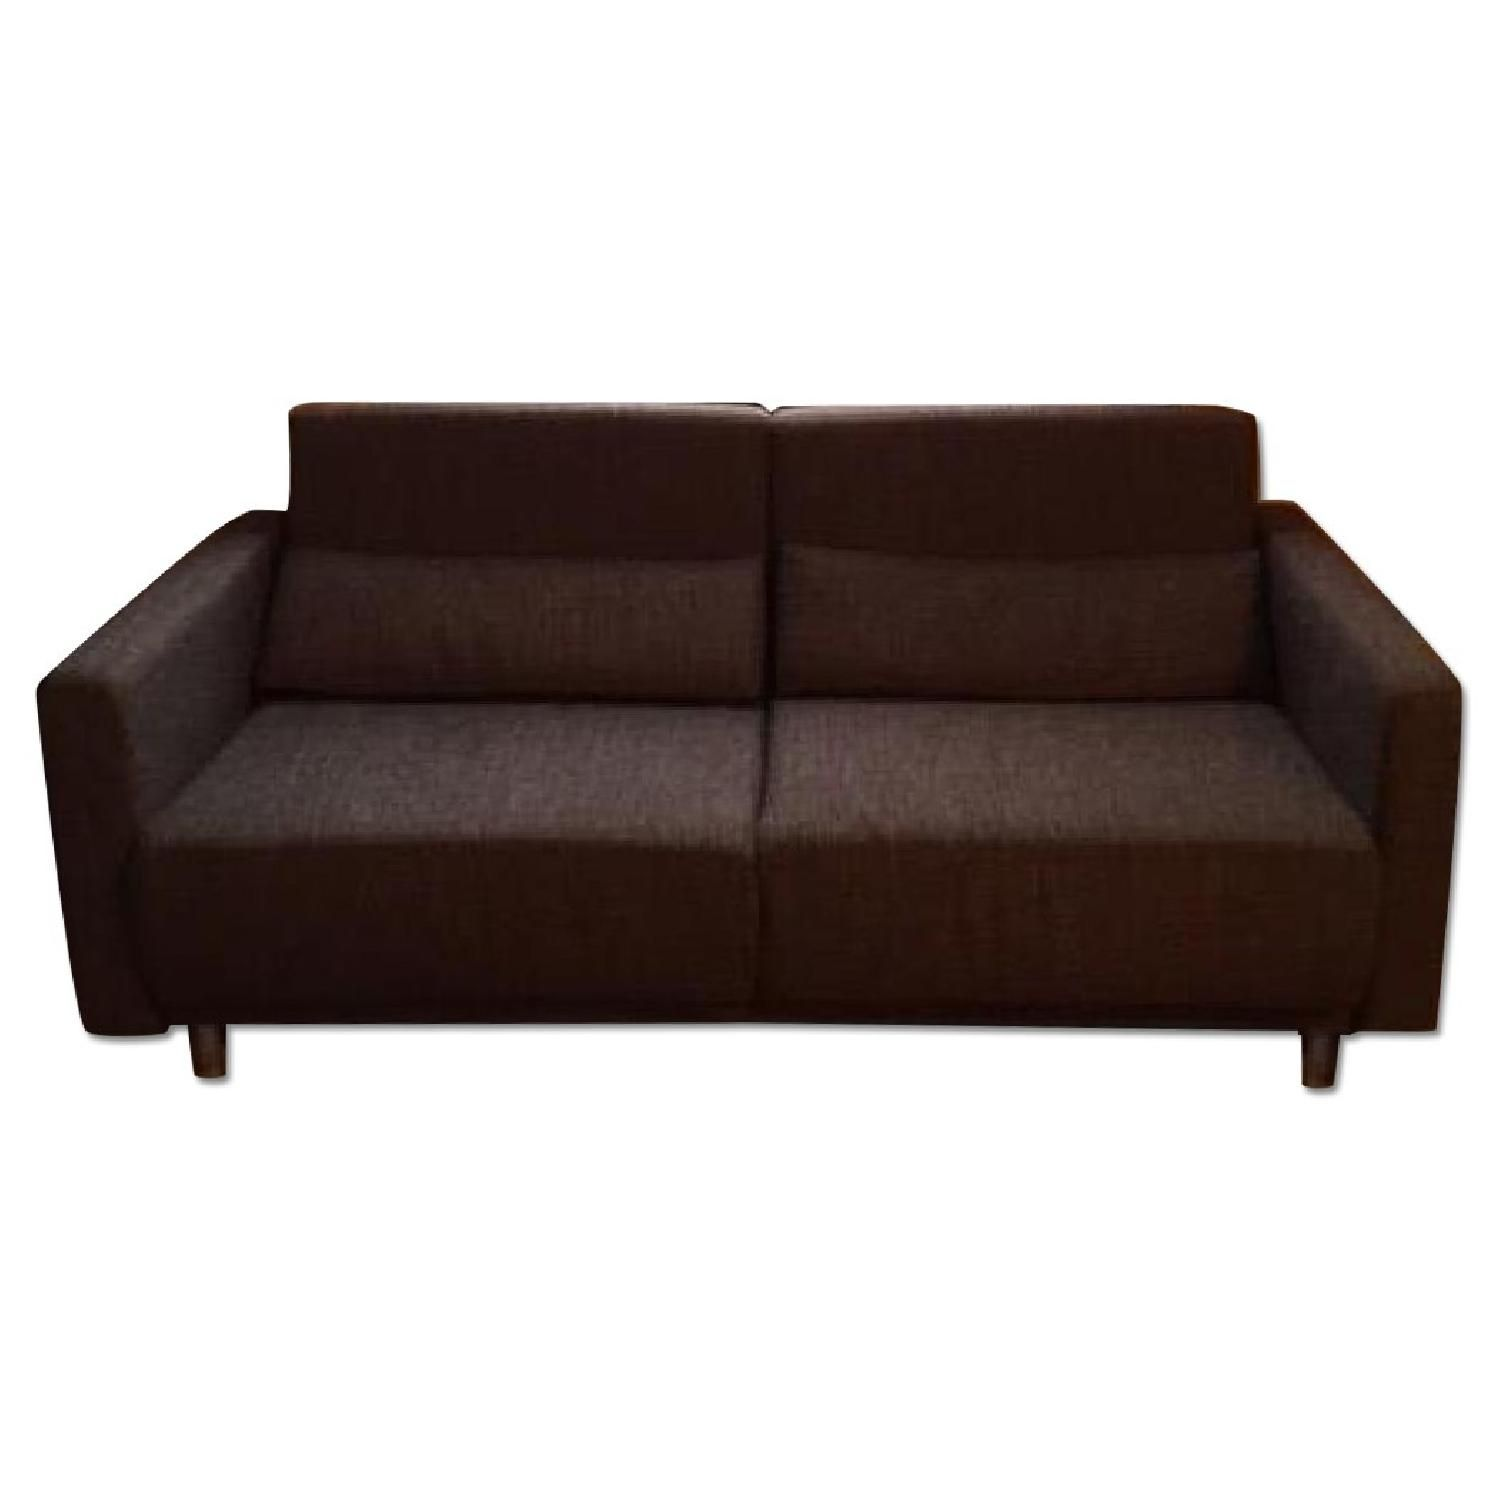 Boconcept Melo Sleeper Sofa